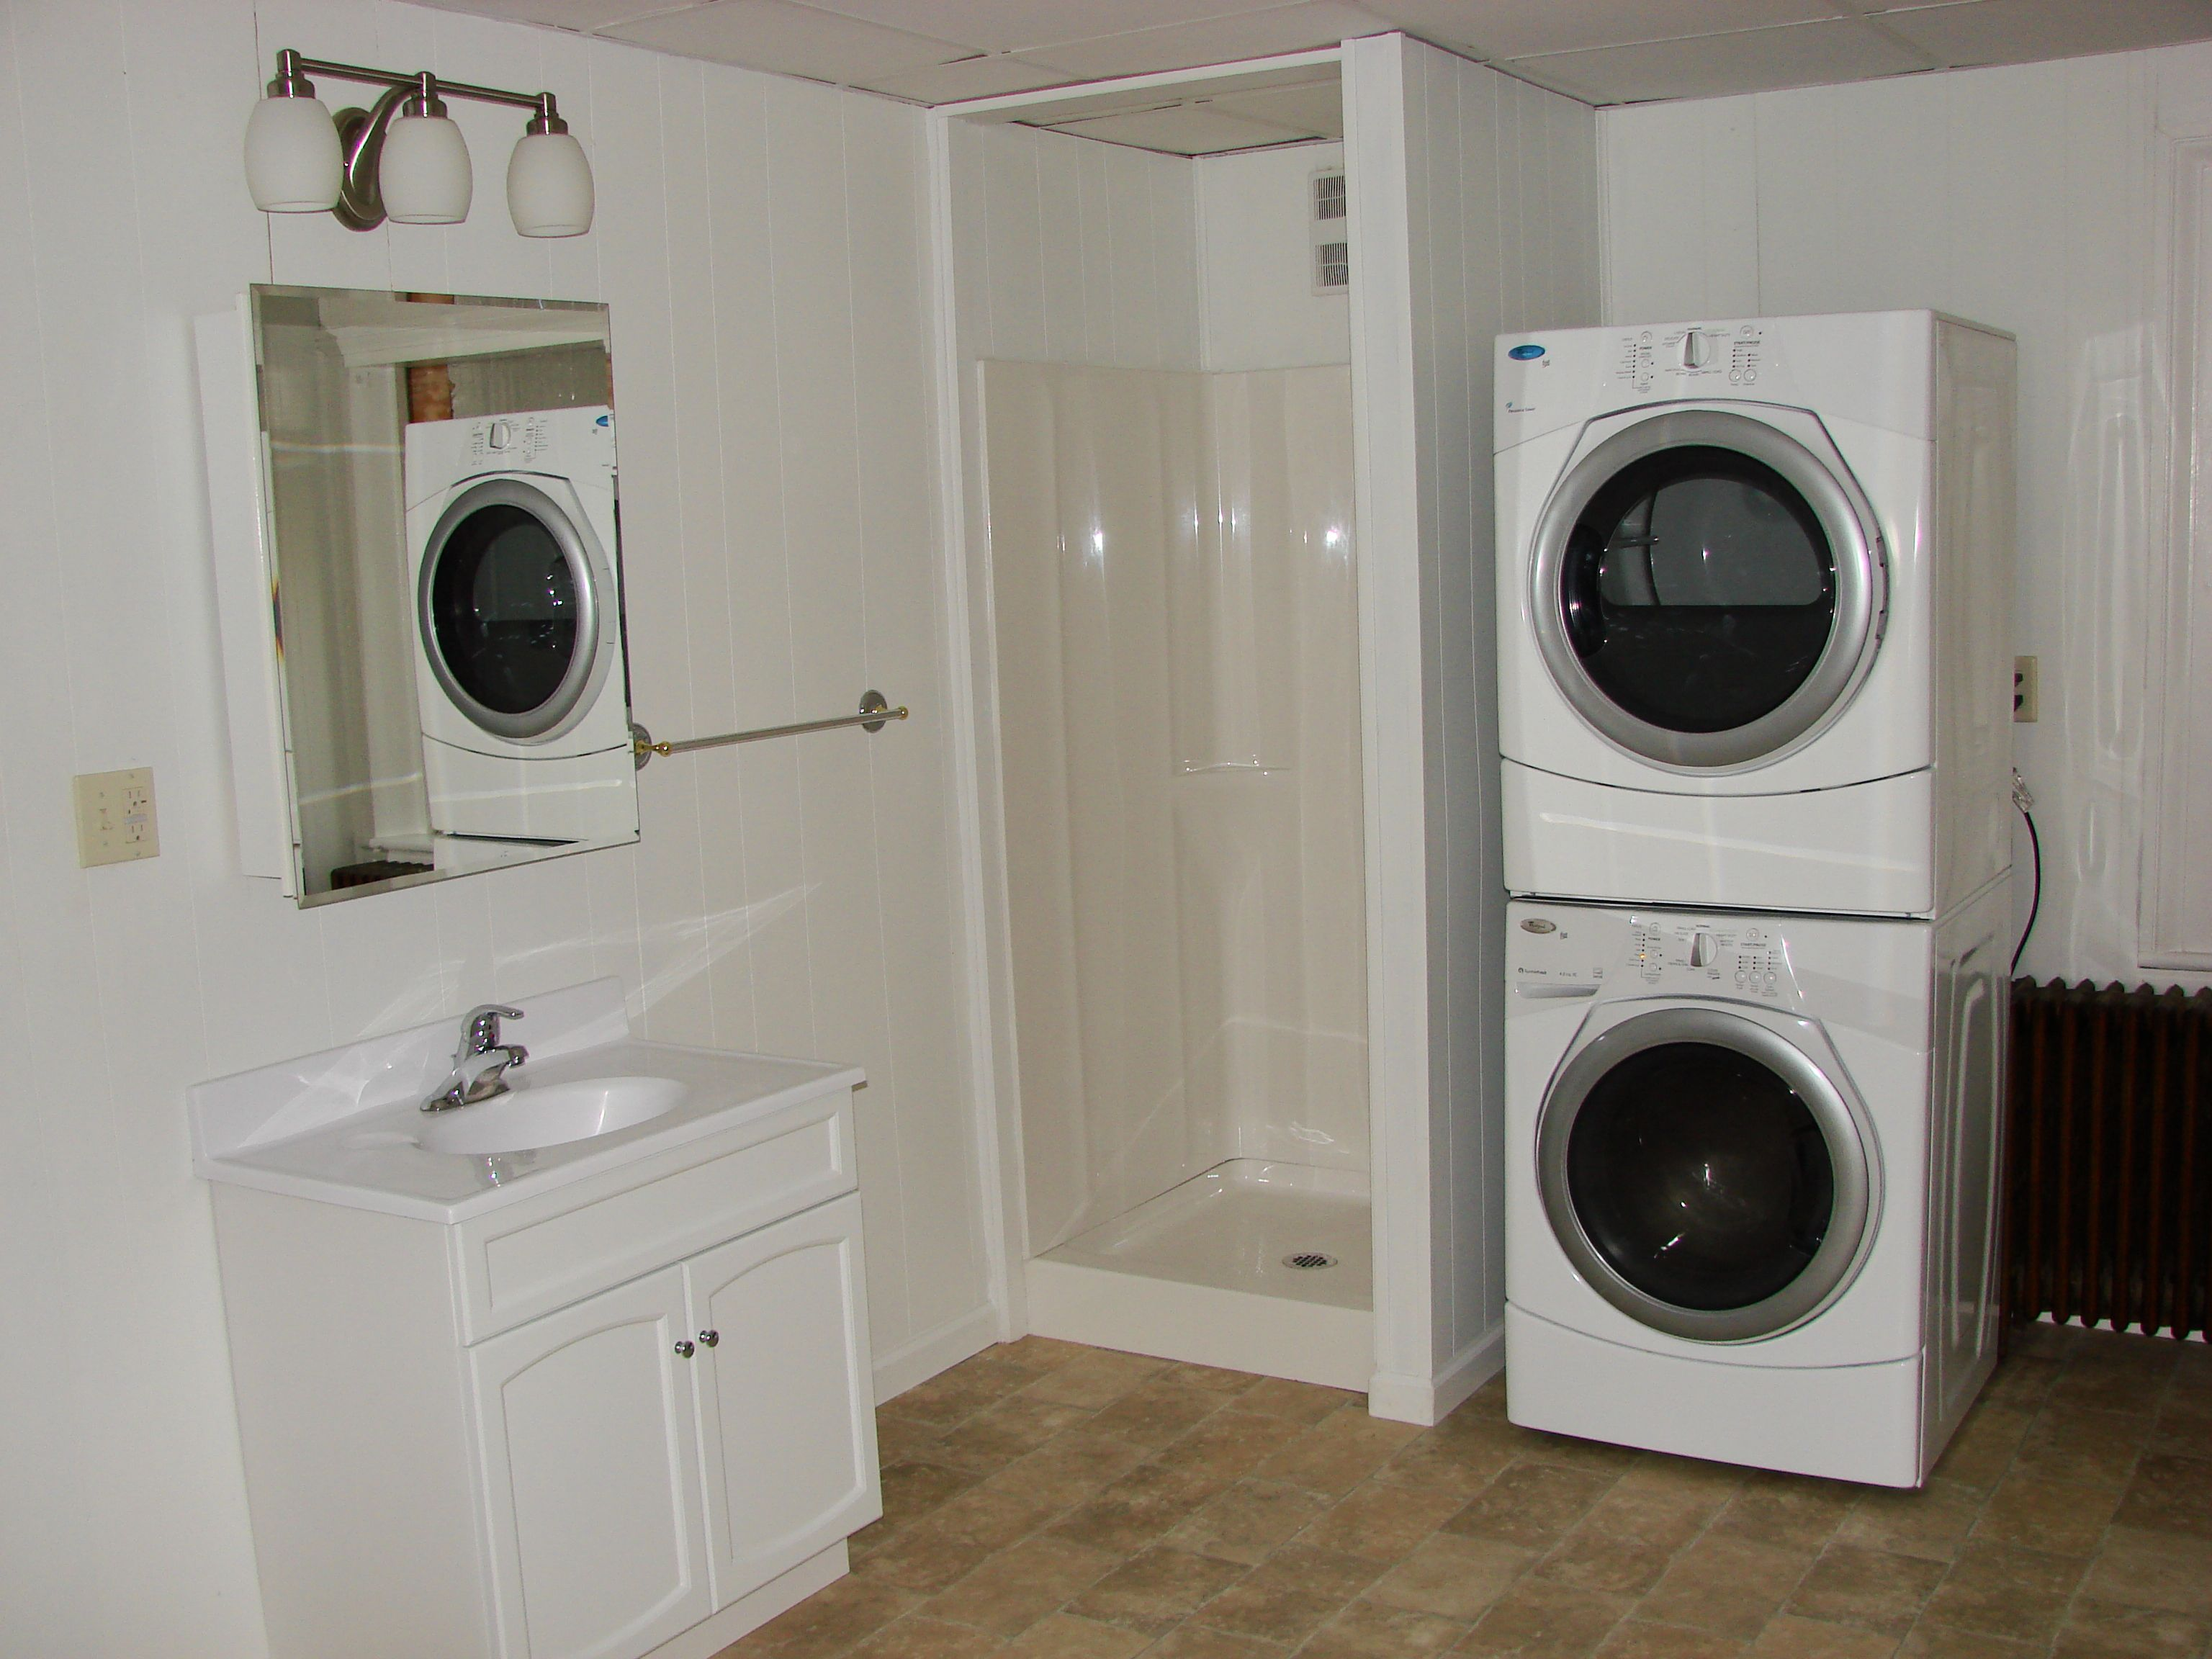 Cool white wash machine and dry machine on the side of for Small utility room